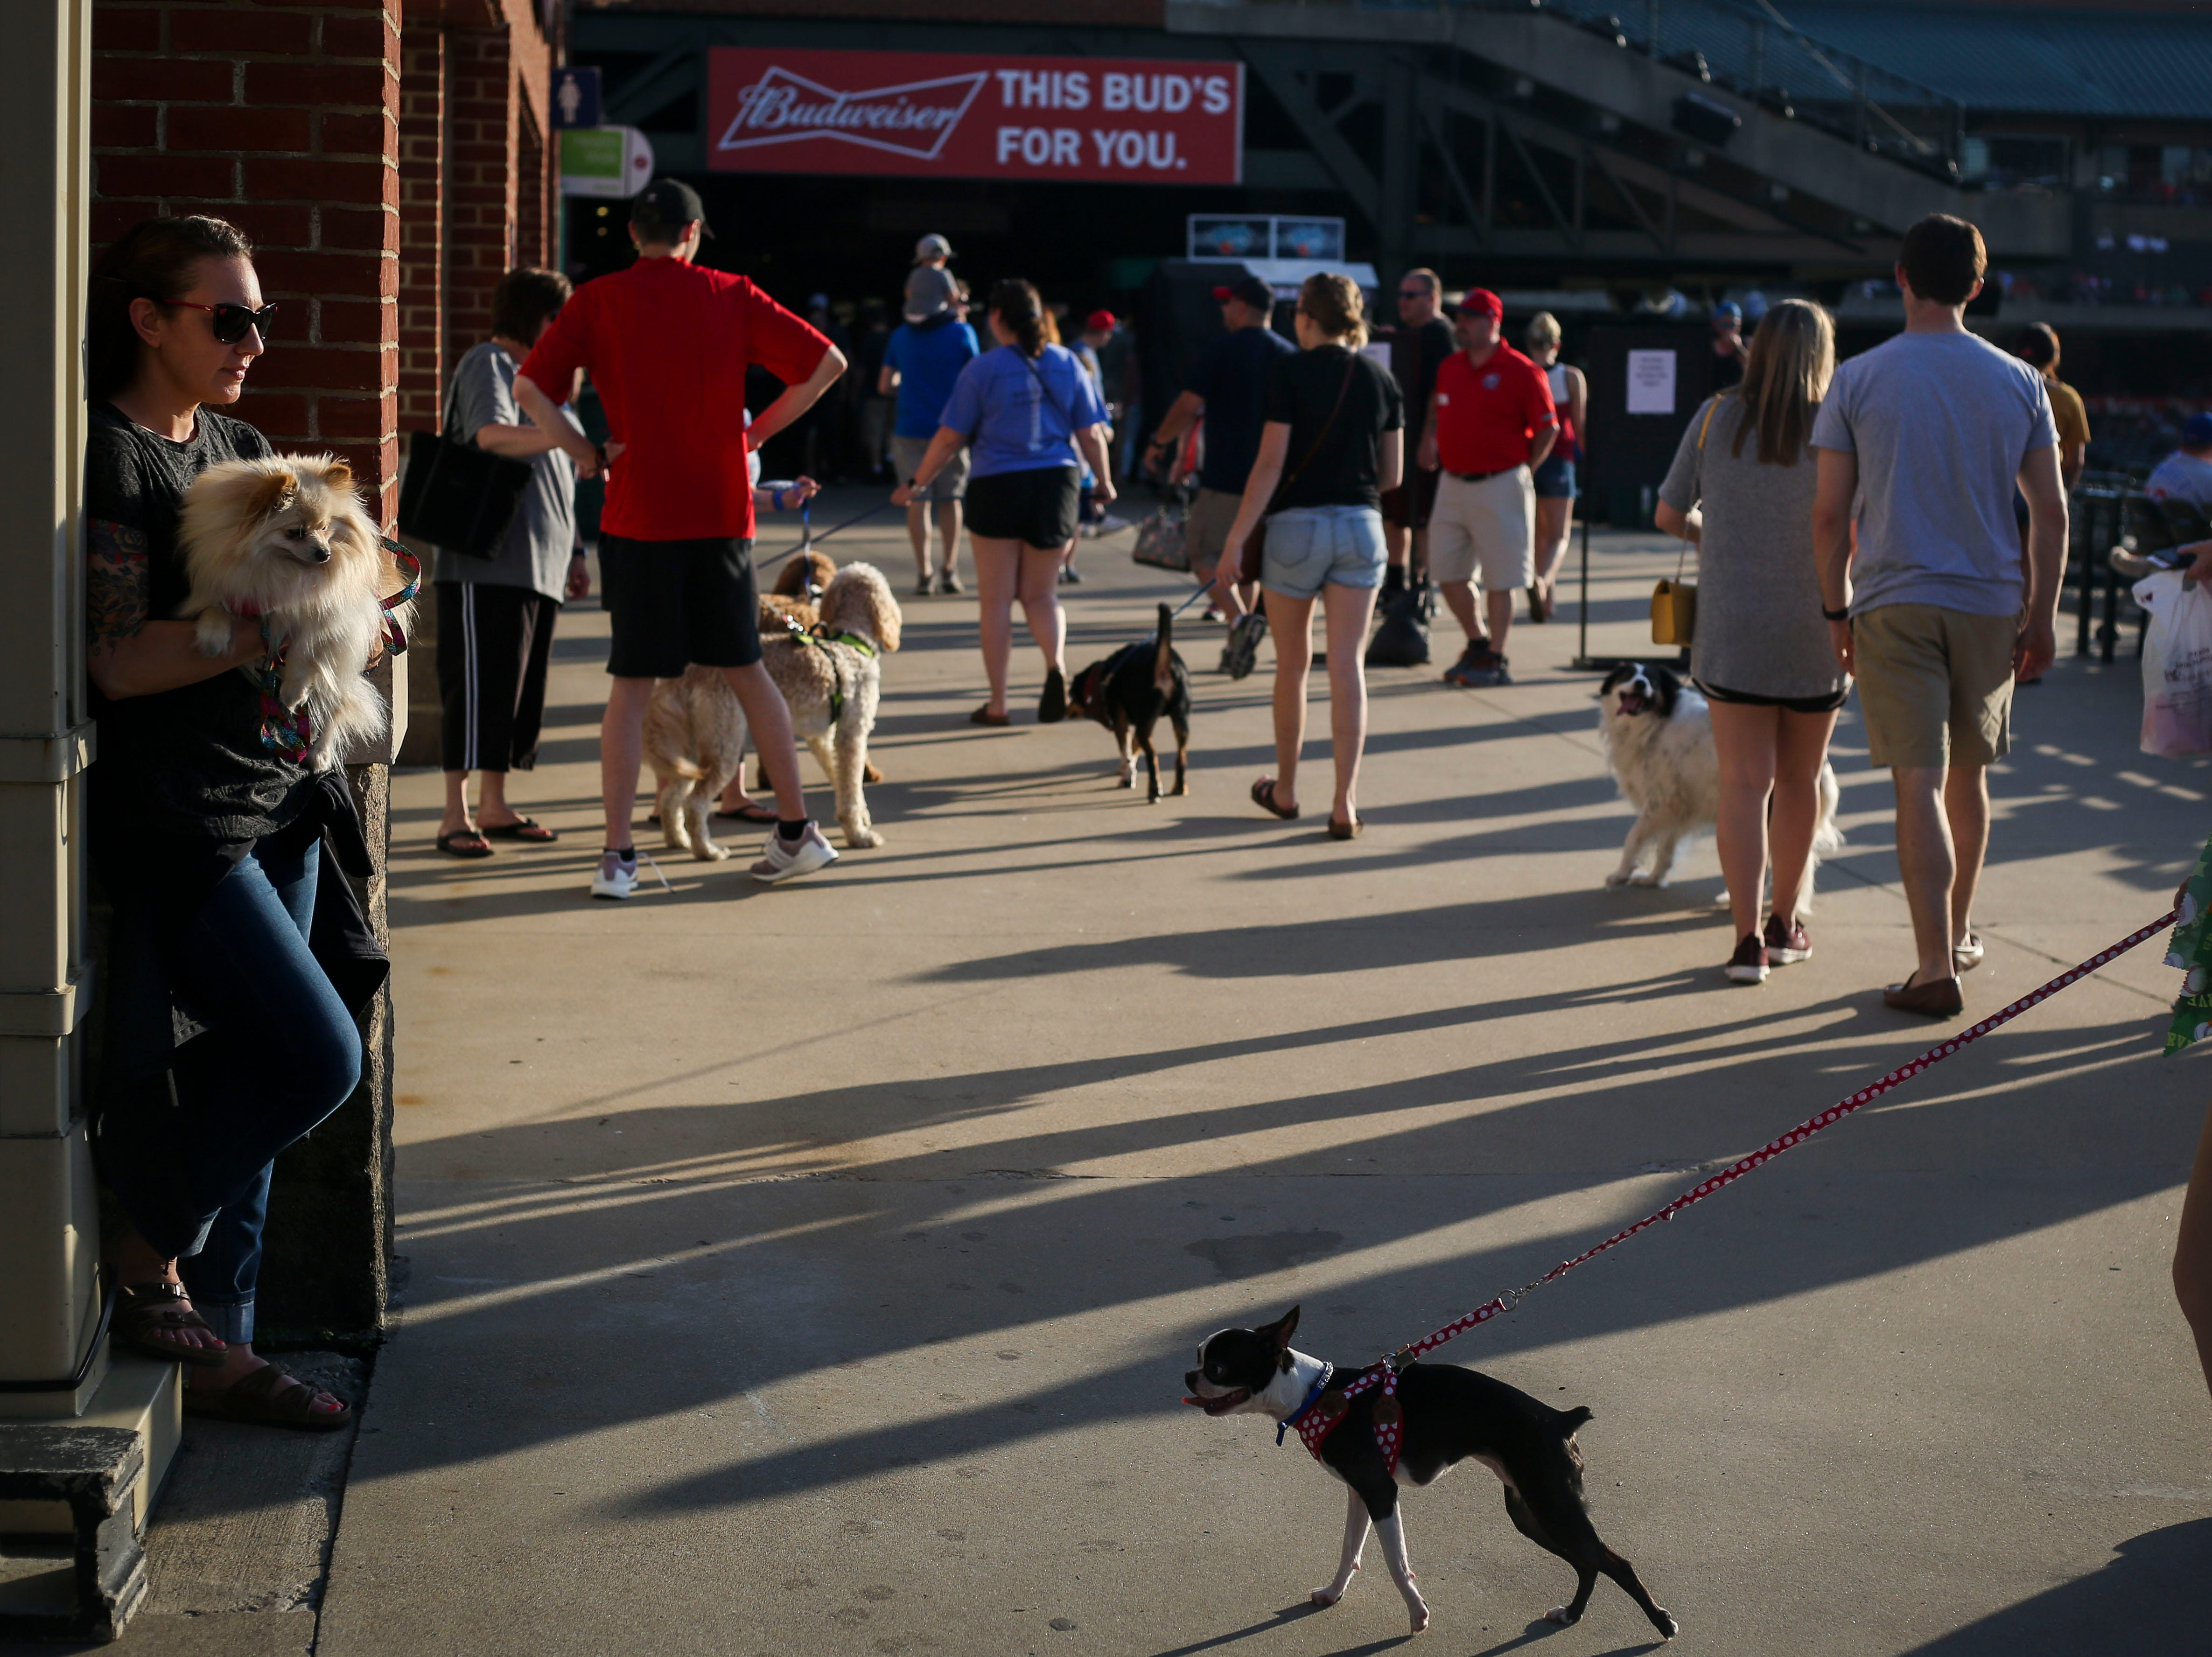 Juli Baranello, left, holds her dog Talulah during the Louisville Bats v. Syracuse Mets game during Dog Day Nights at Louisville Slugger Field in downtown Louisville, Ky. on Tuesday, May 7, 2019.